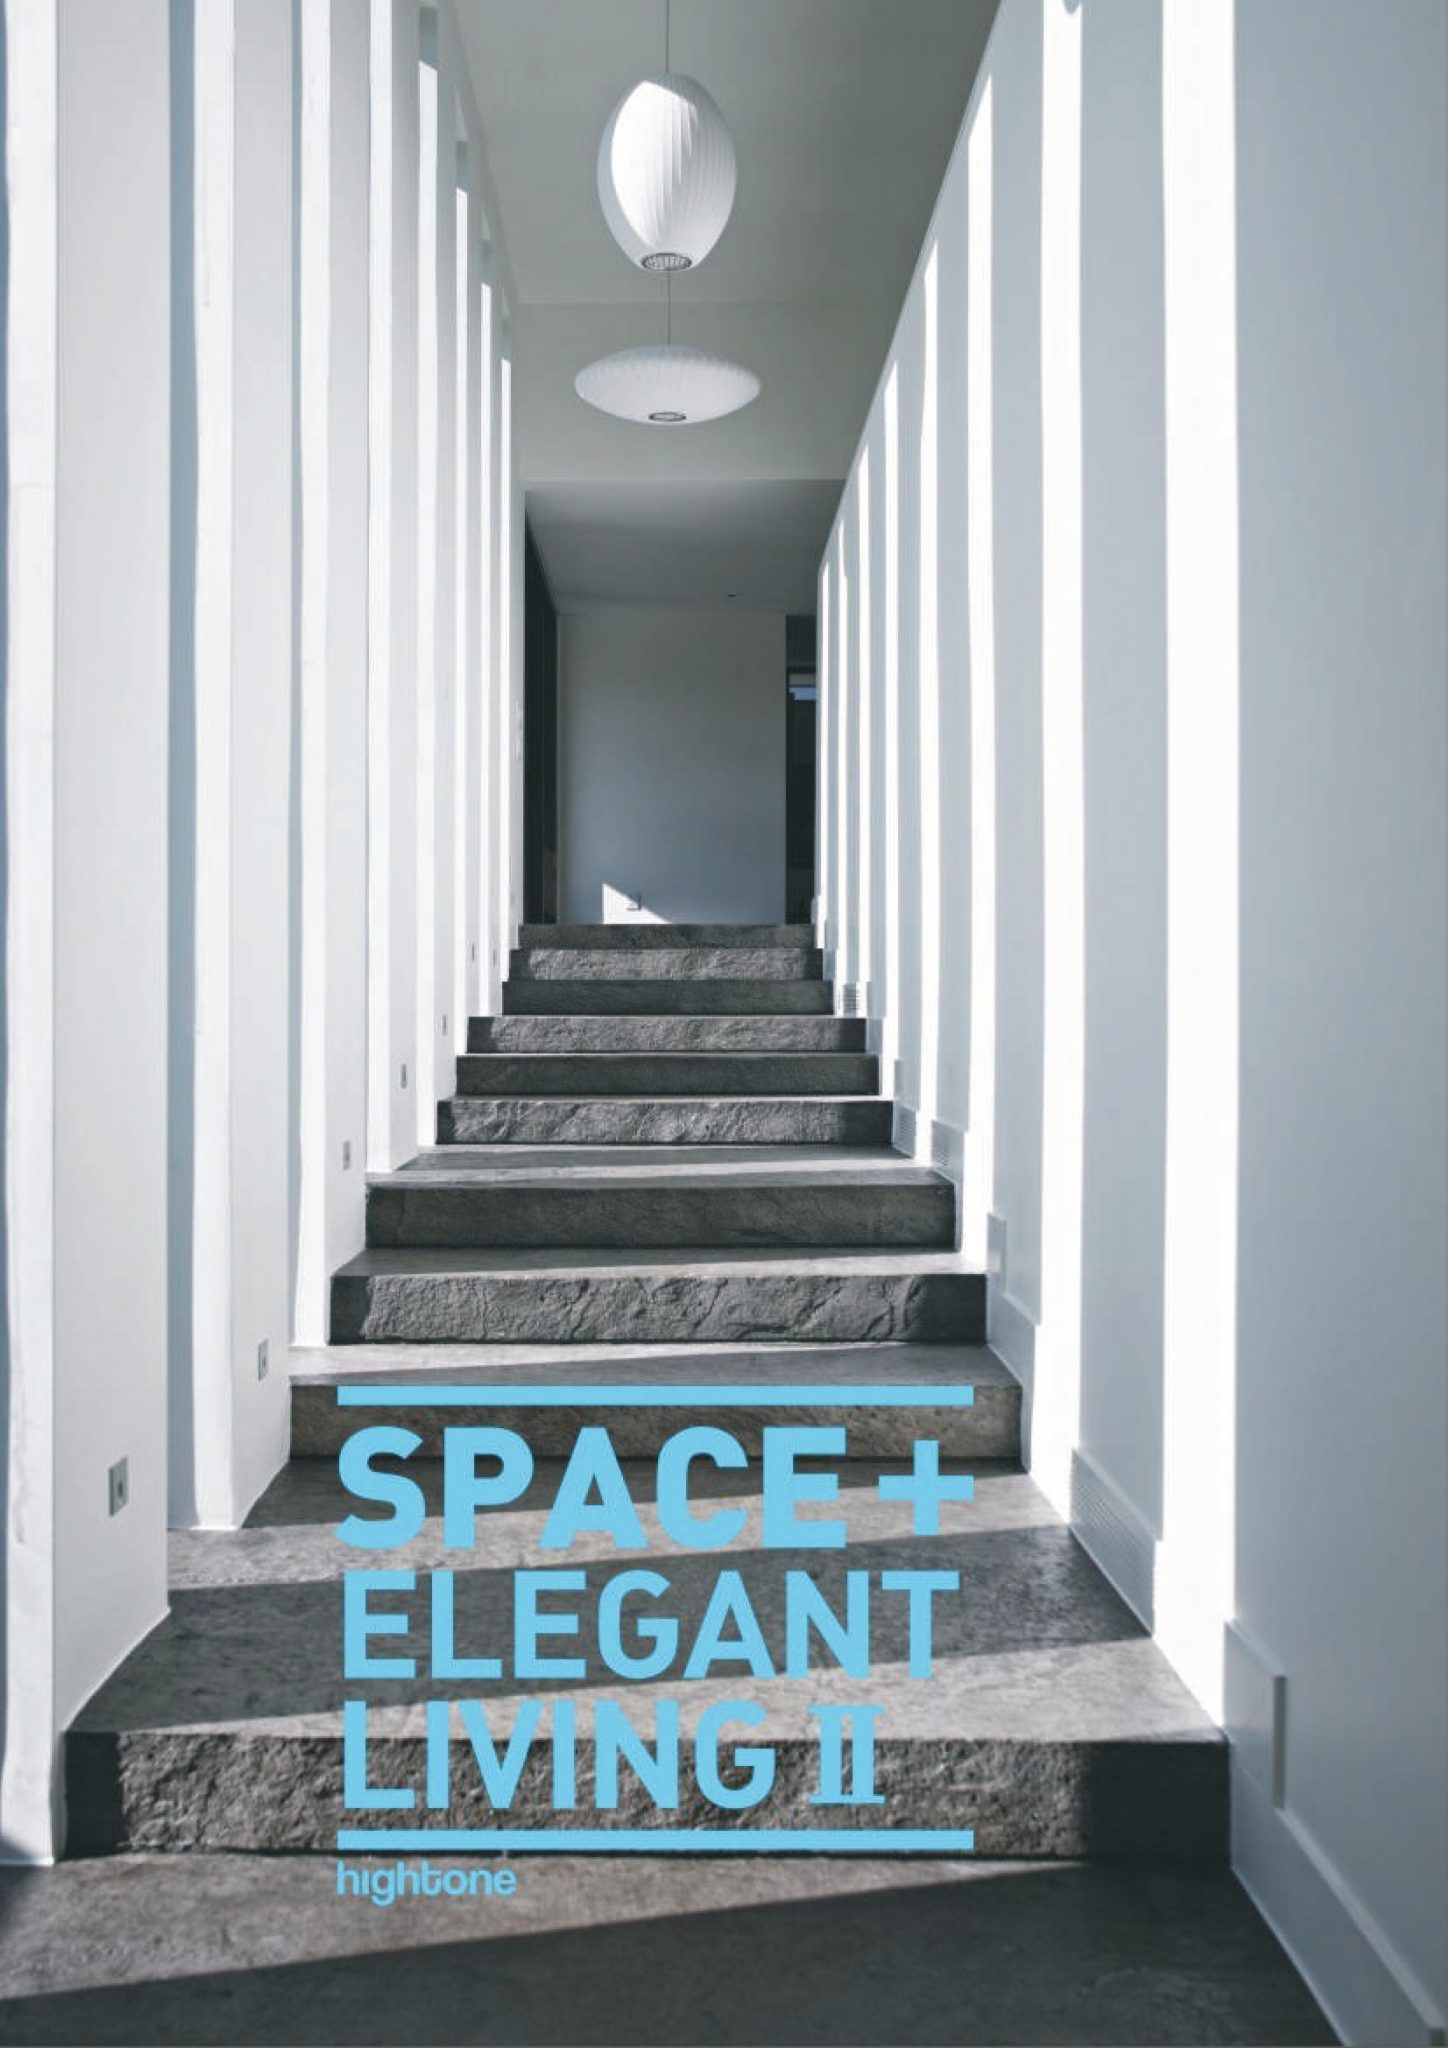 4MS and 6BD on Space + Elegant Living